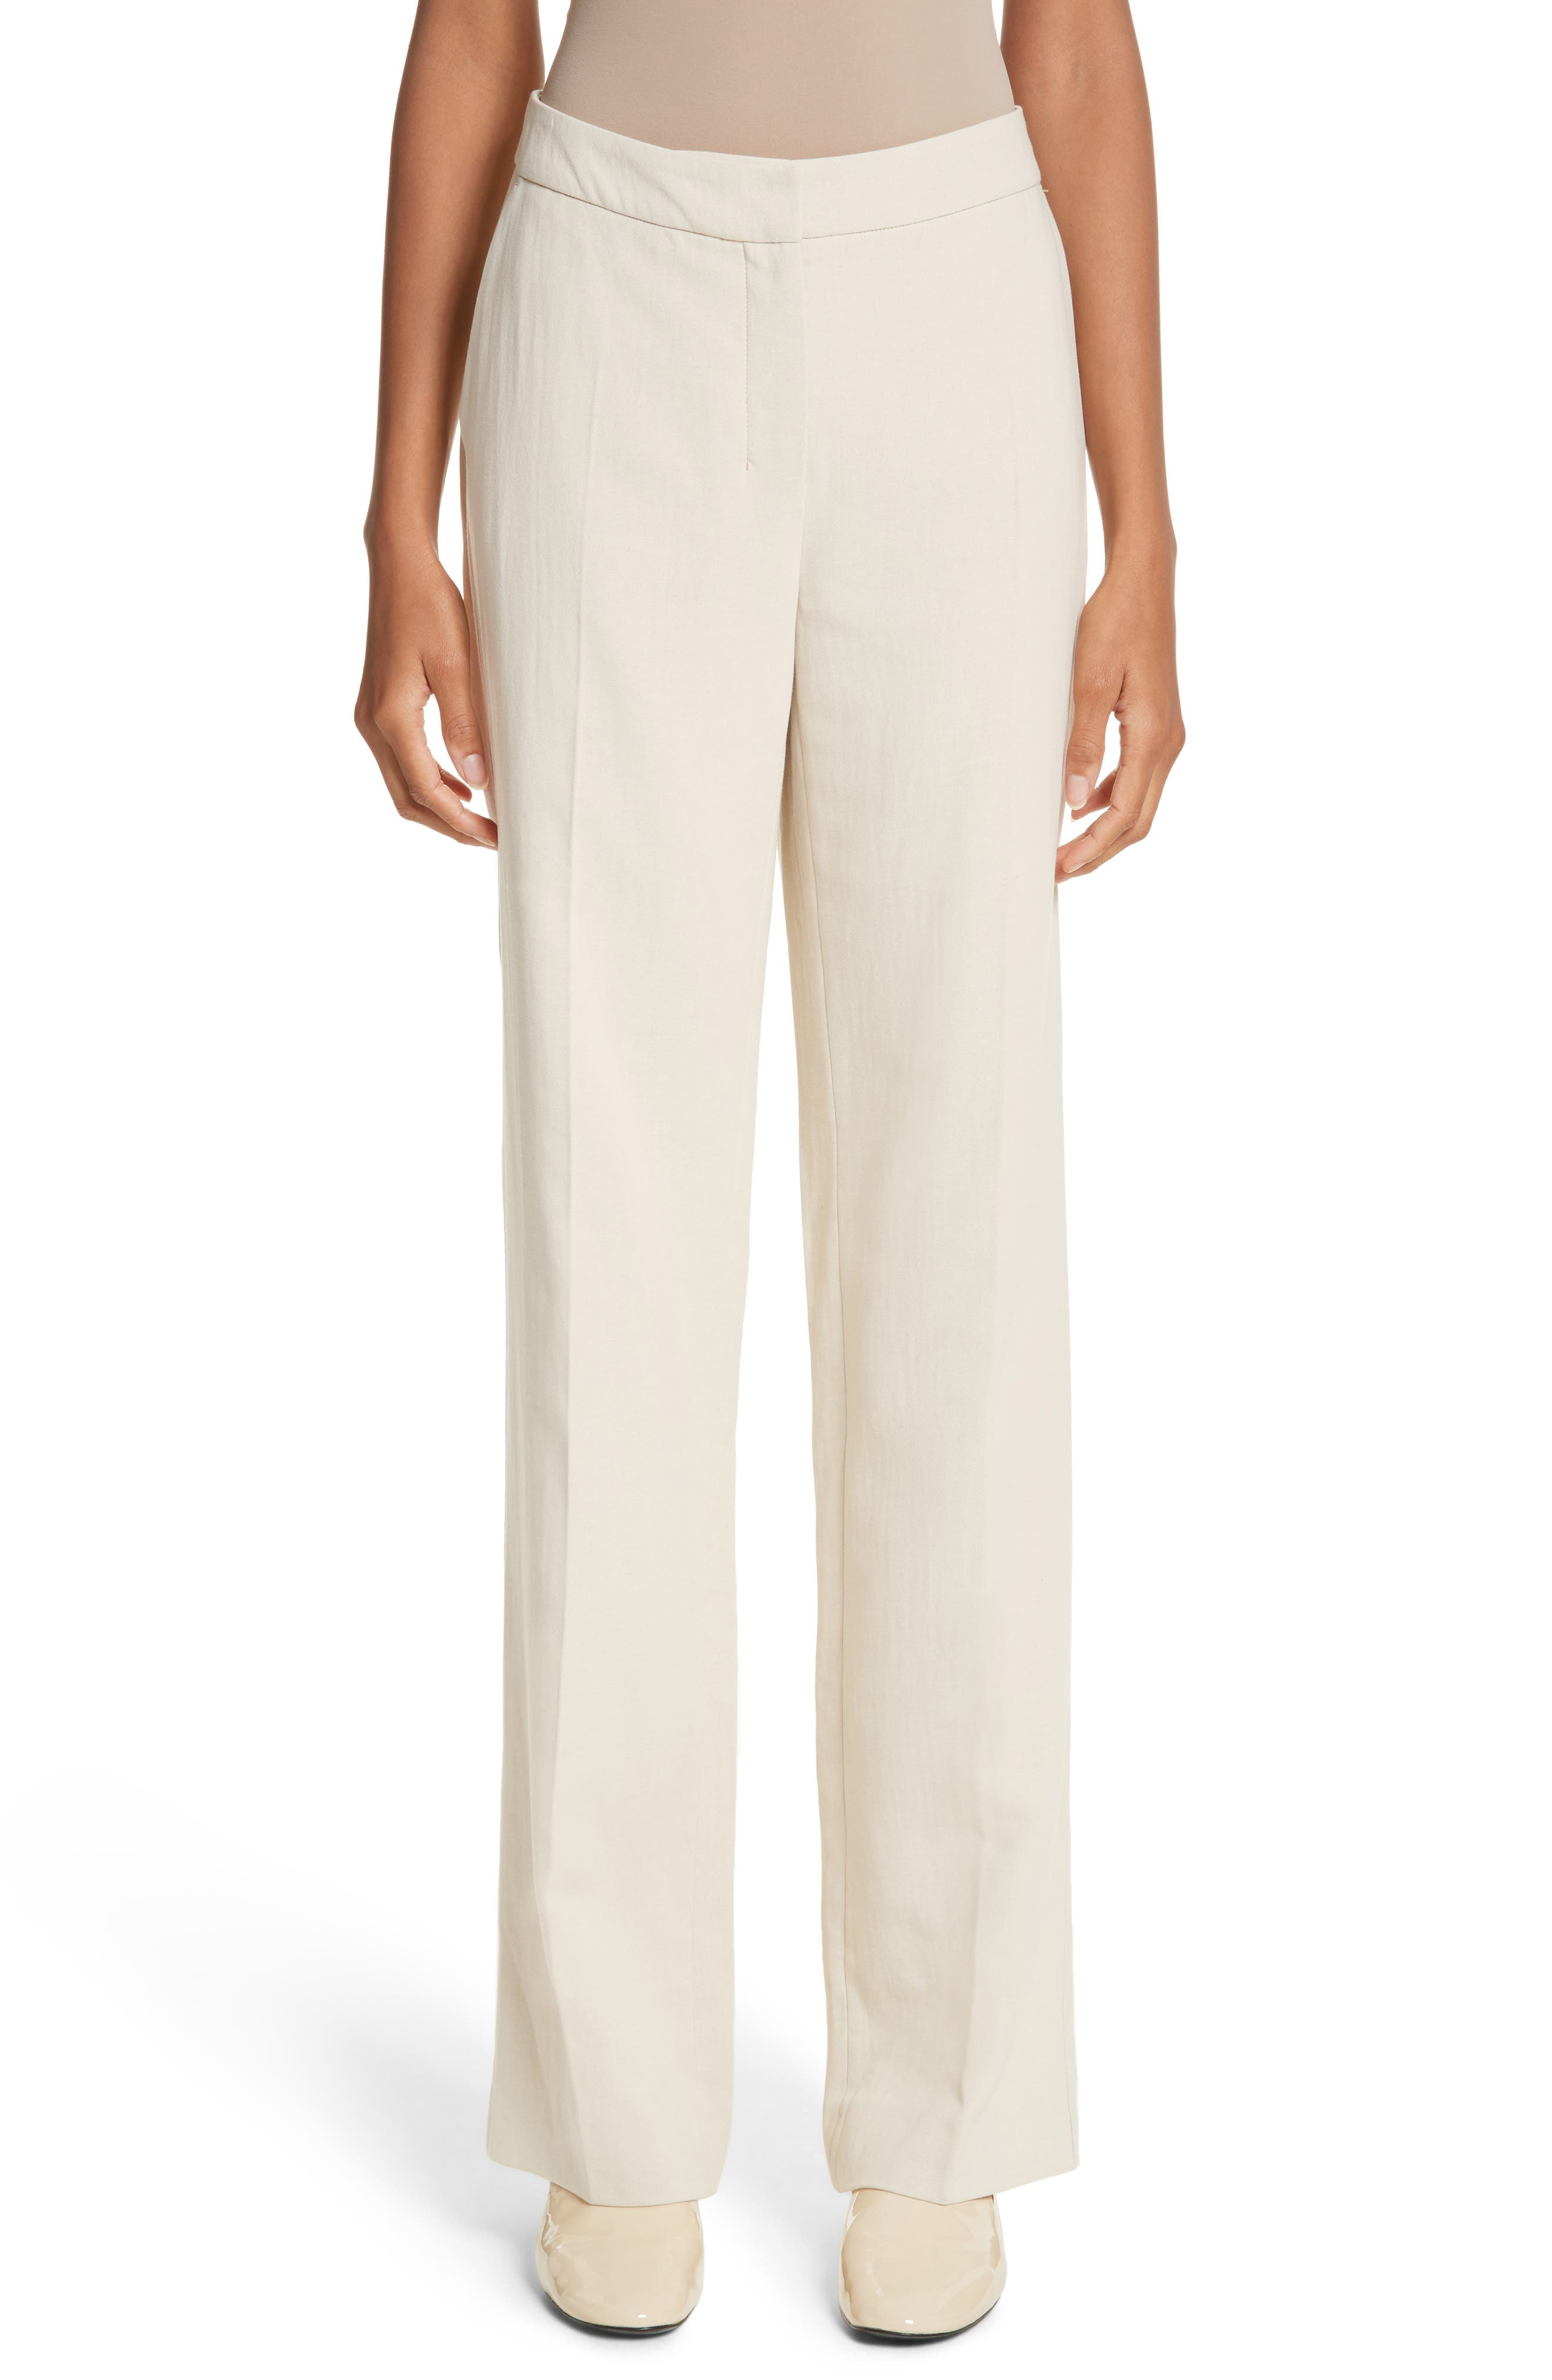 Alternate Image 1 Selected - Max Mara Cursore Cotton Wide Leg Pants